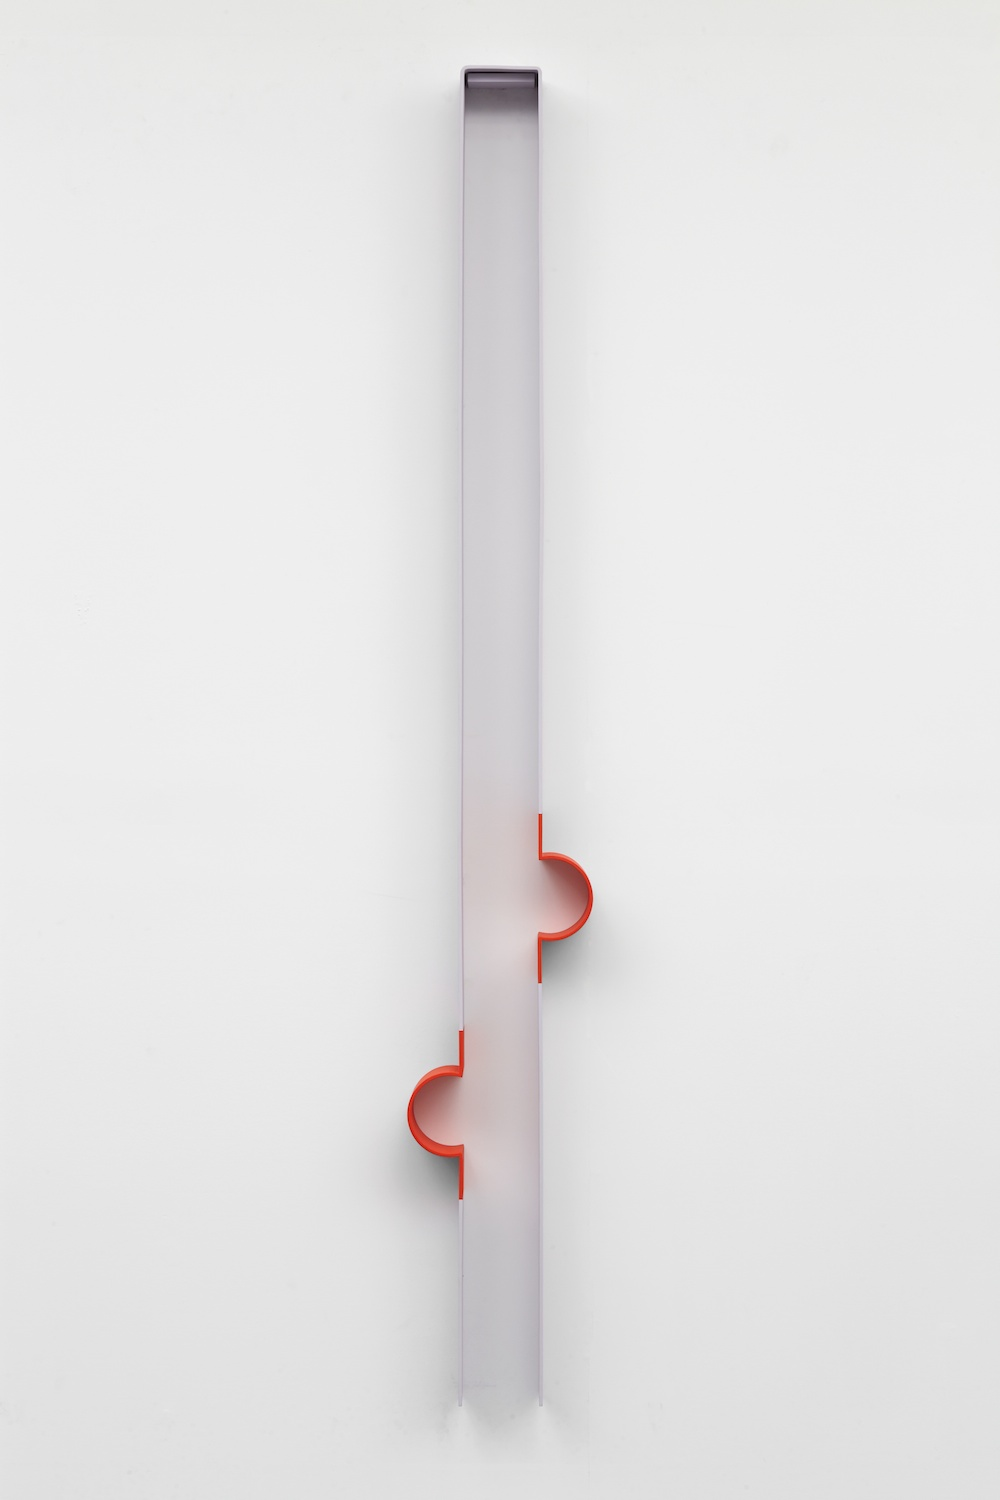 Lisa Williamson  Bump, Neoprene  2013 Acrylic on powder-coated steel 80h x 14w x 4d in LW121